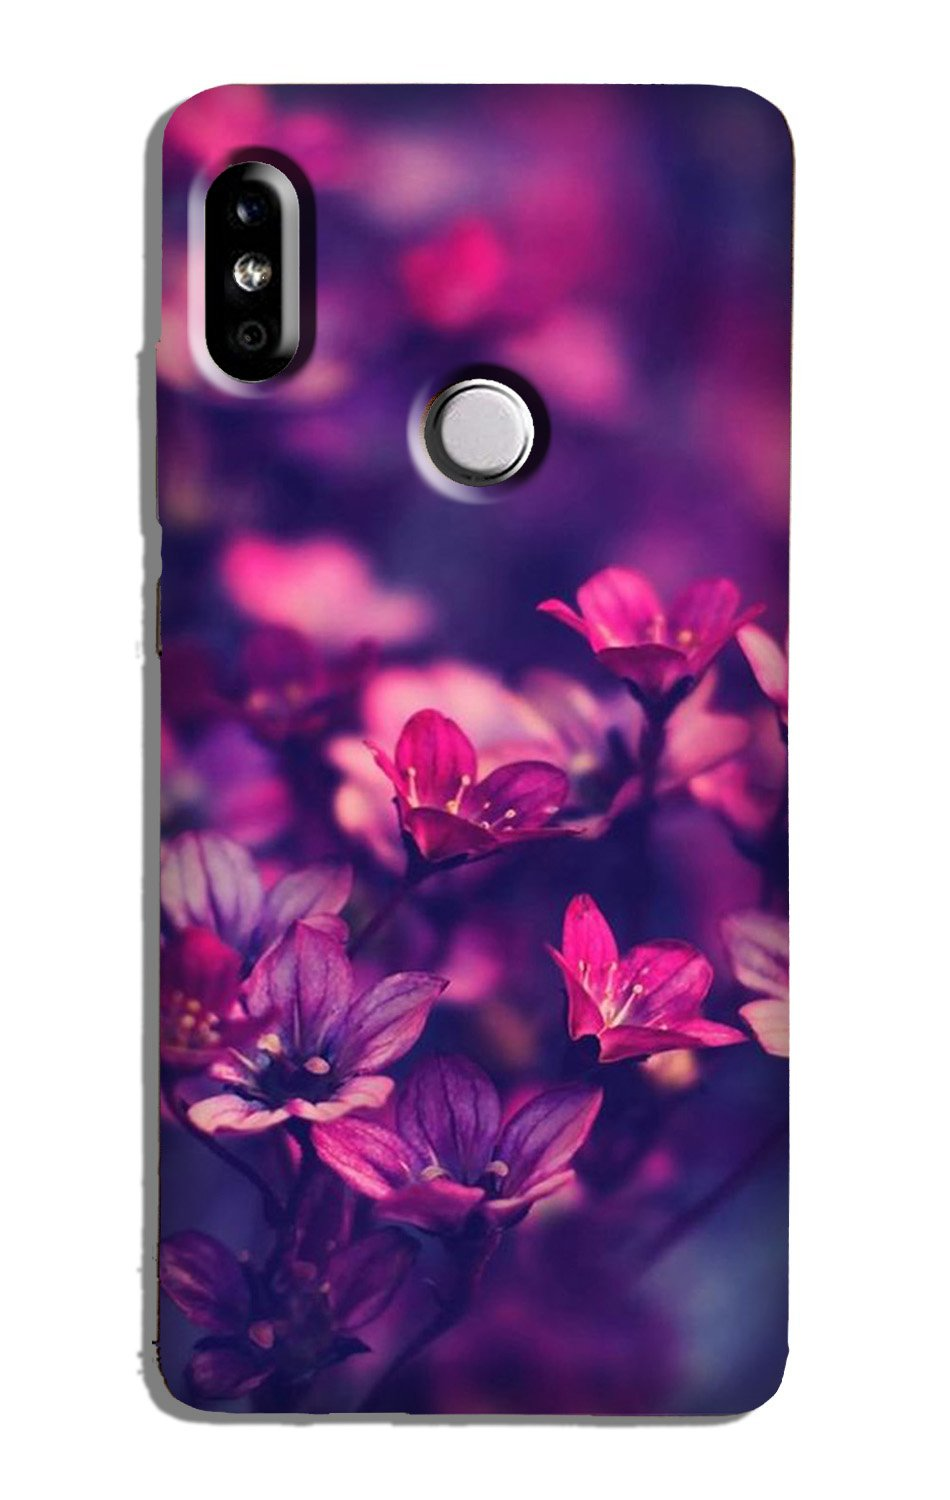 flowers Case for Redmi Note 5 Pro